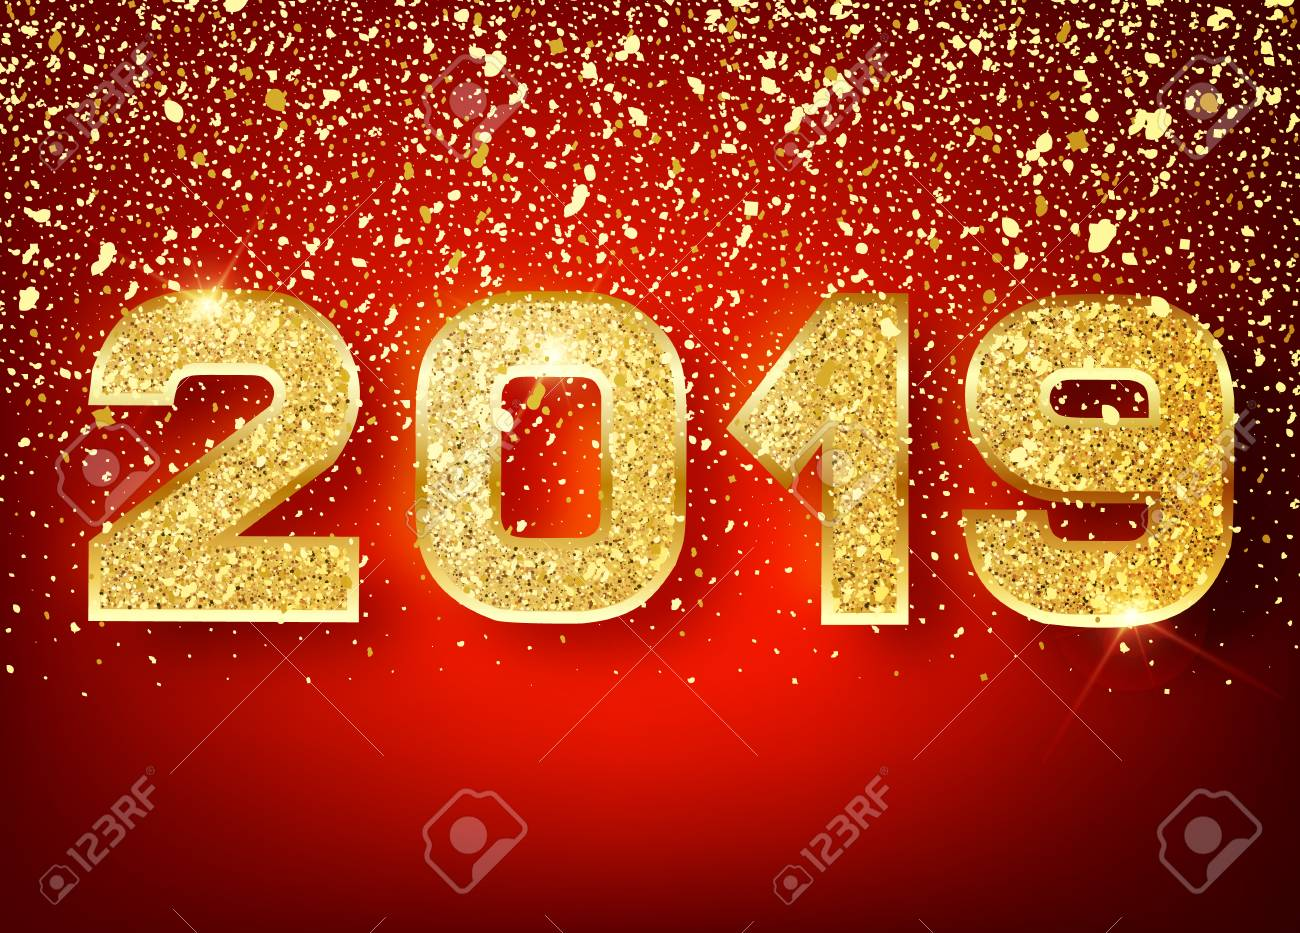 2019 happy new year gold numbers design of greeting card of falling shiny confetti